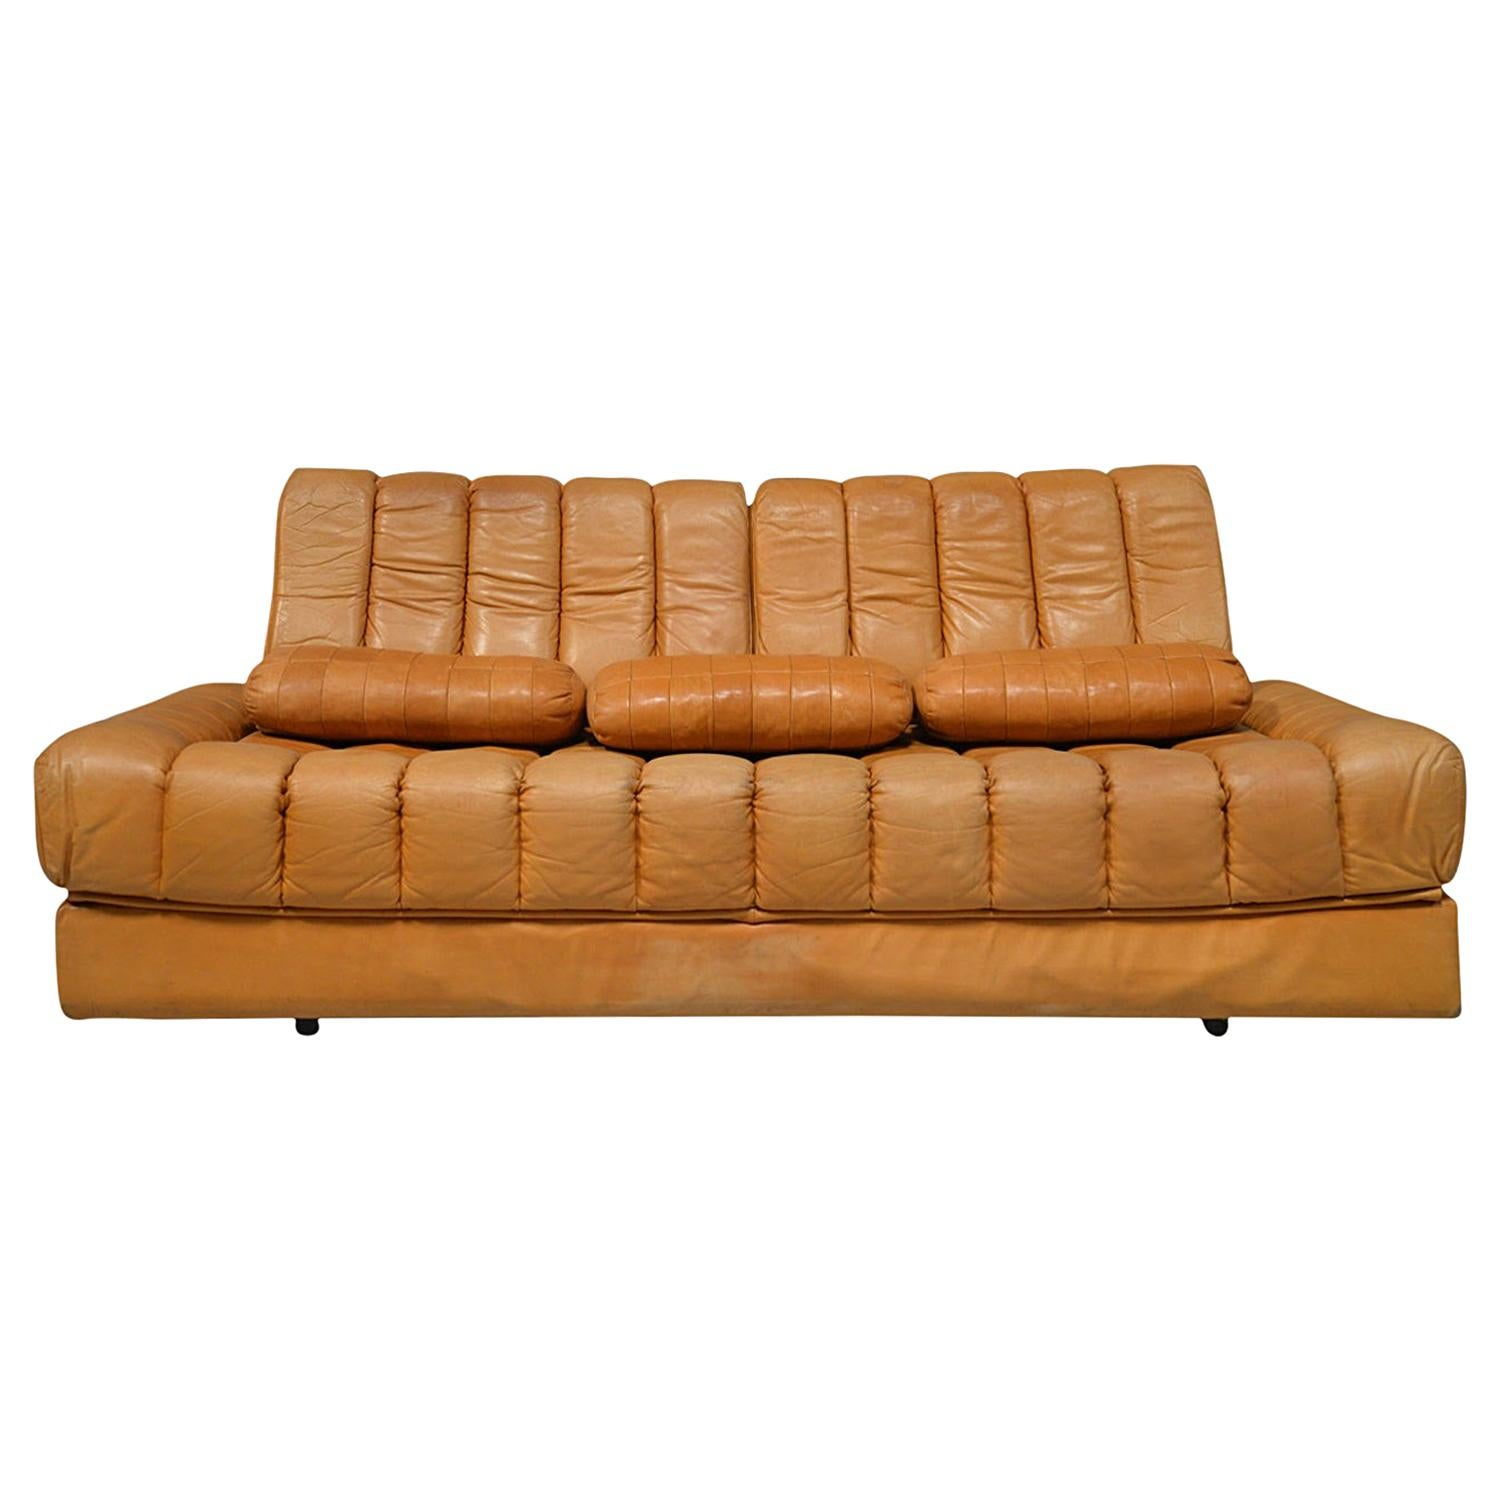 Vintage De Sede DS 85 Leather Daybed and Sofa / Loveseat, Switzerland, 1960s